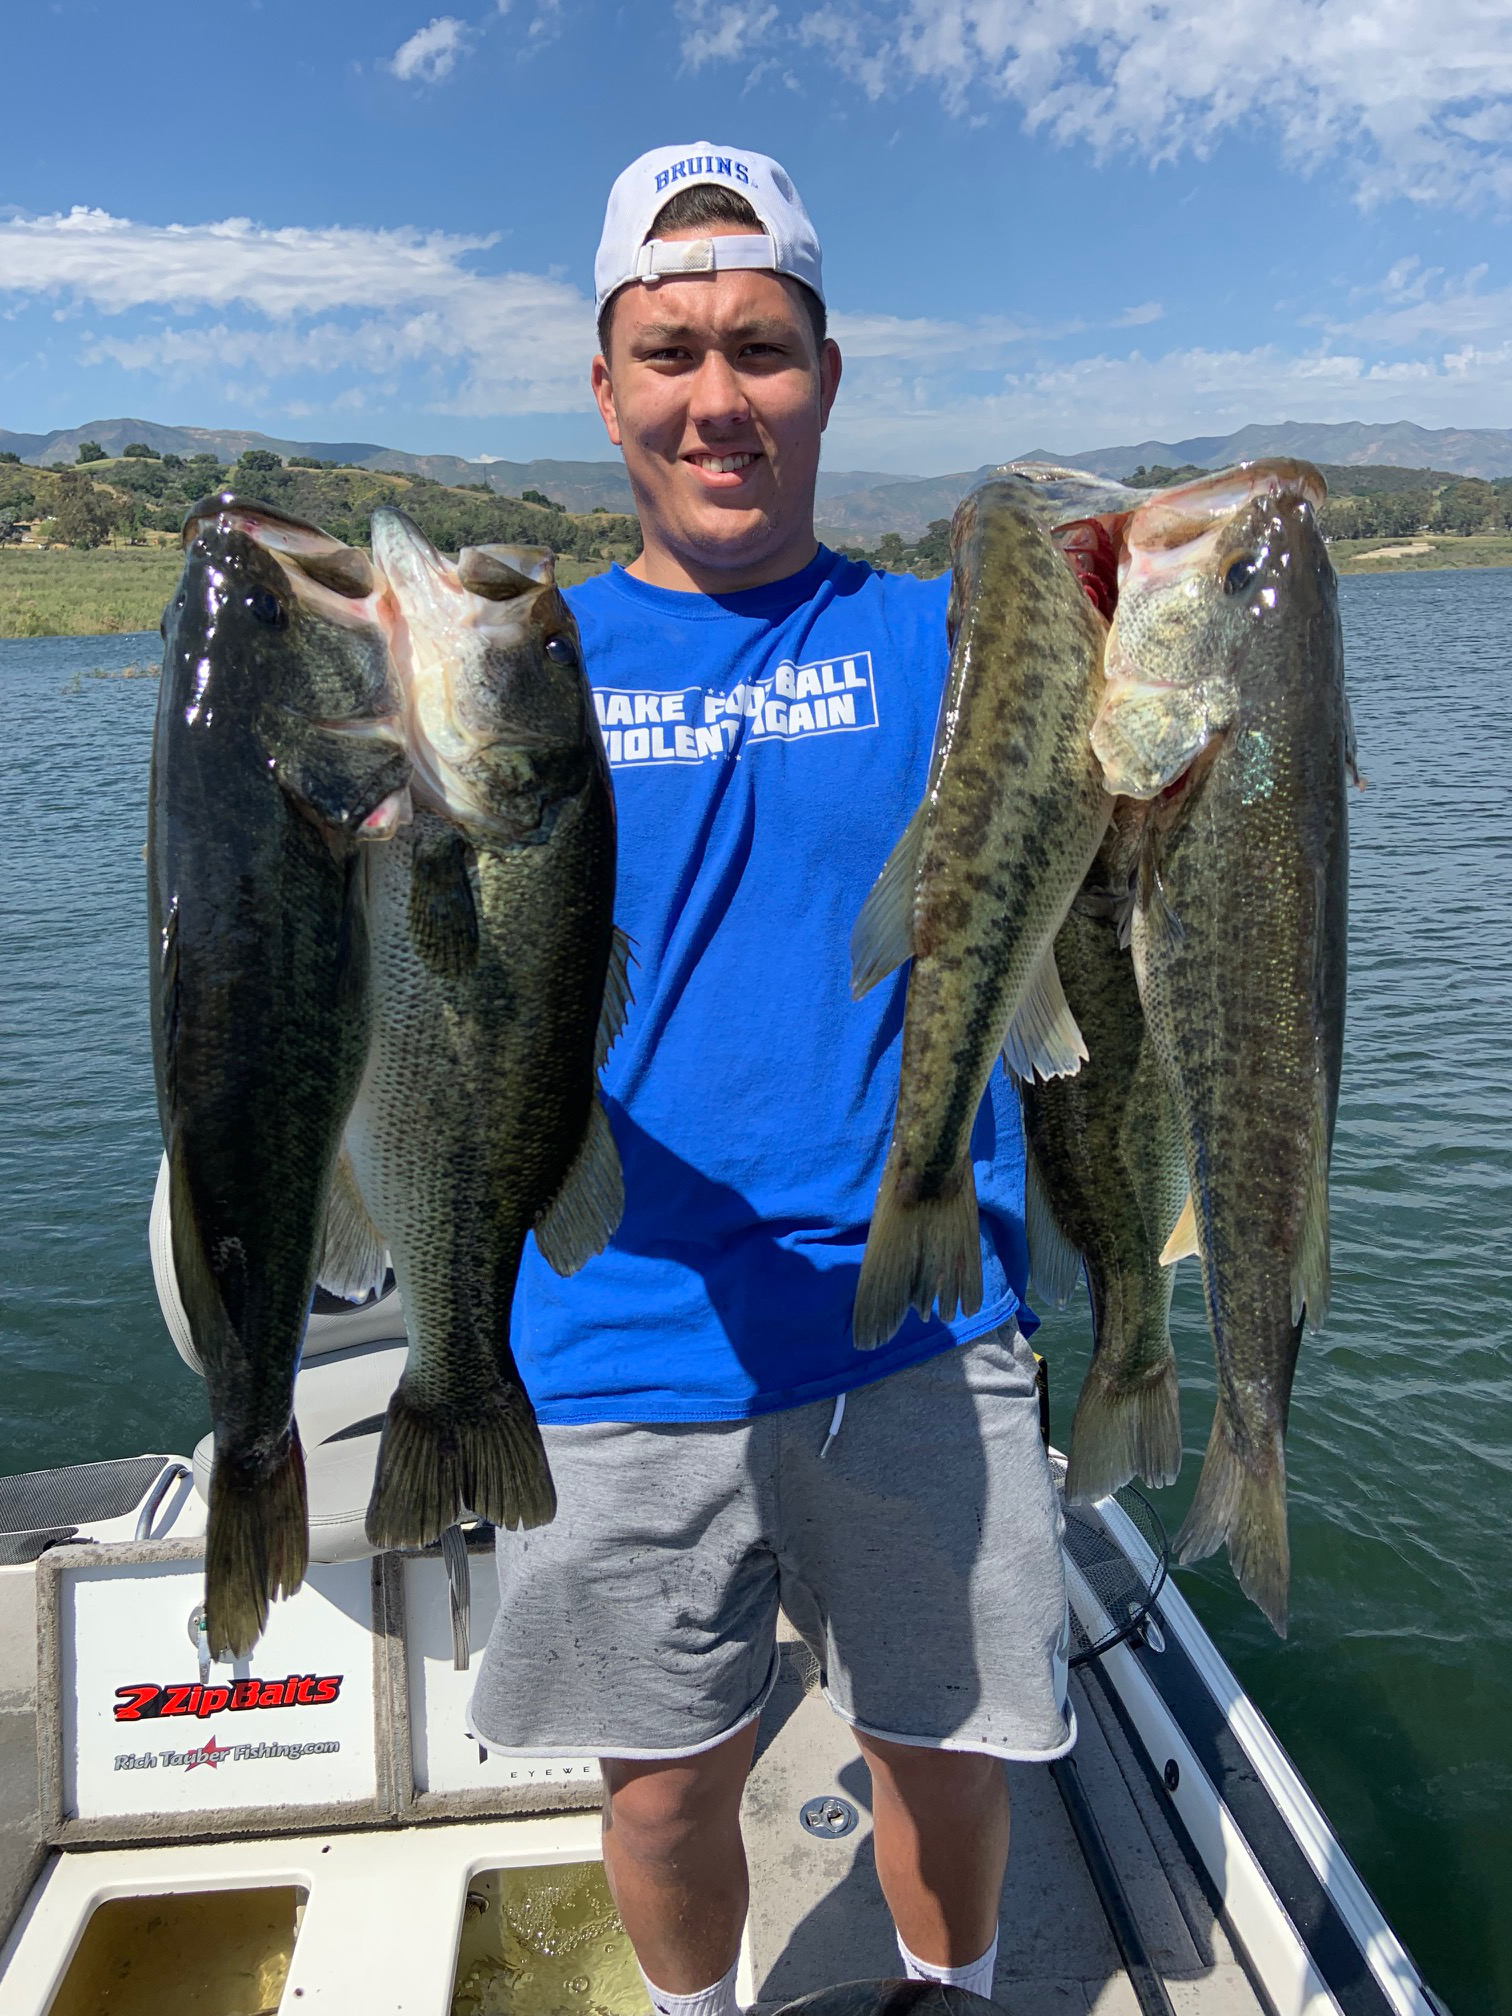 Lake Casitas Fishing Guide Report - bass, trout, crappie, and cat fish